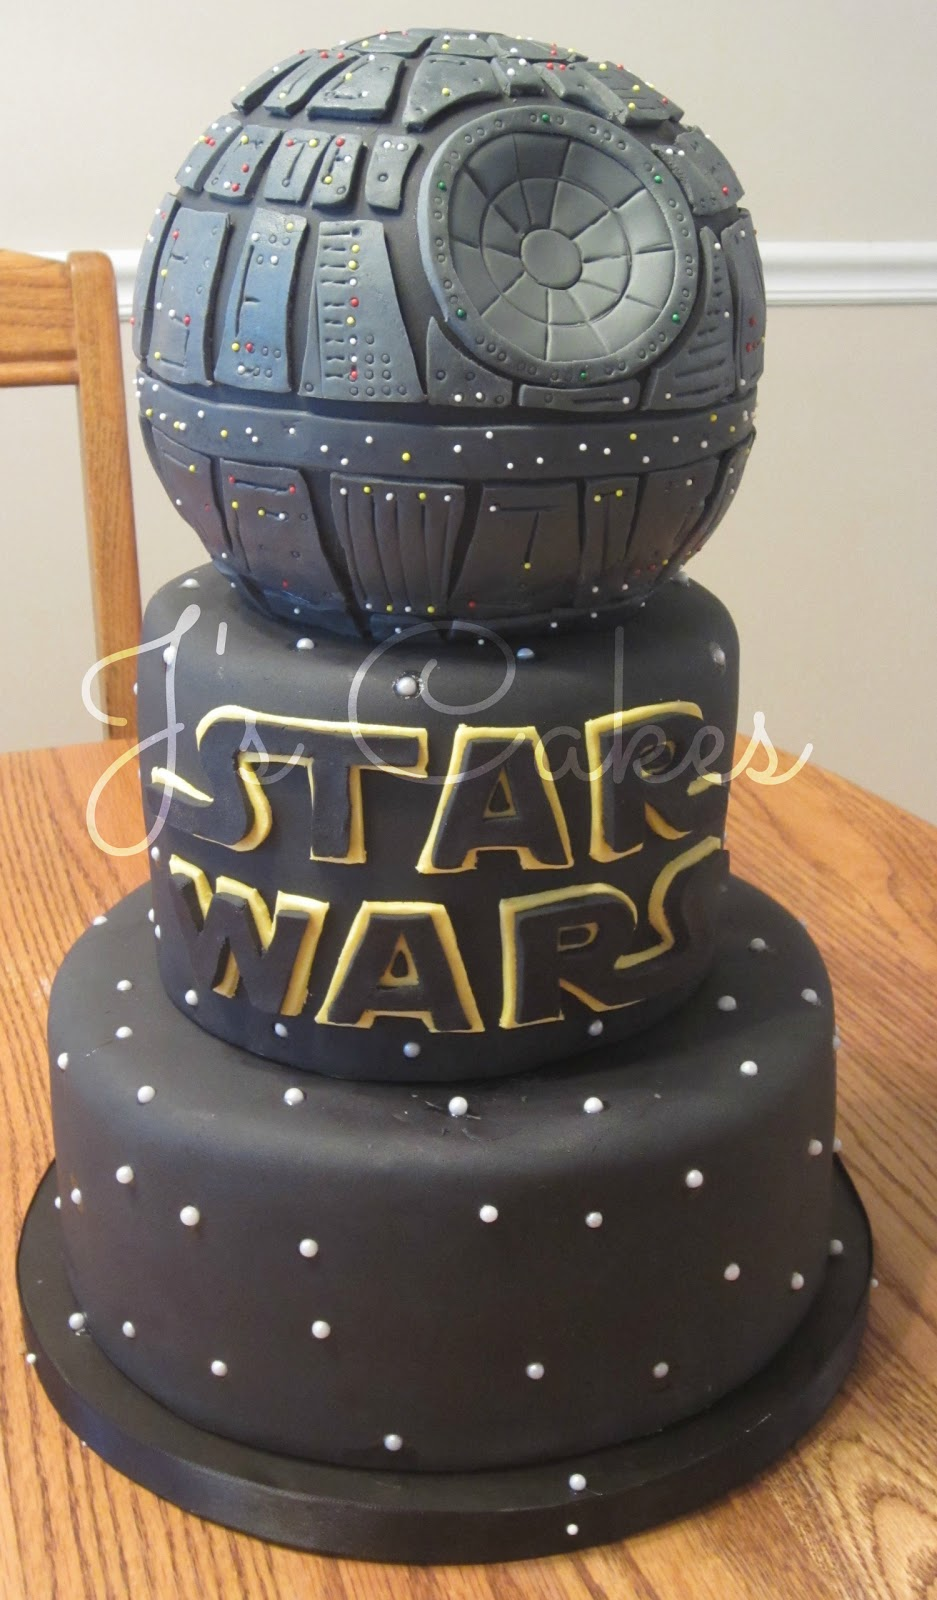 J 39 s cakes star wars death star cake - Star wars birthday cake decorations ...